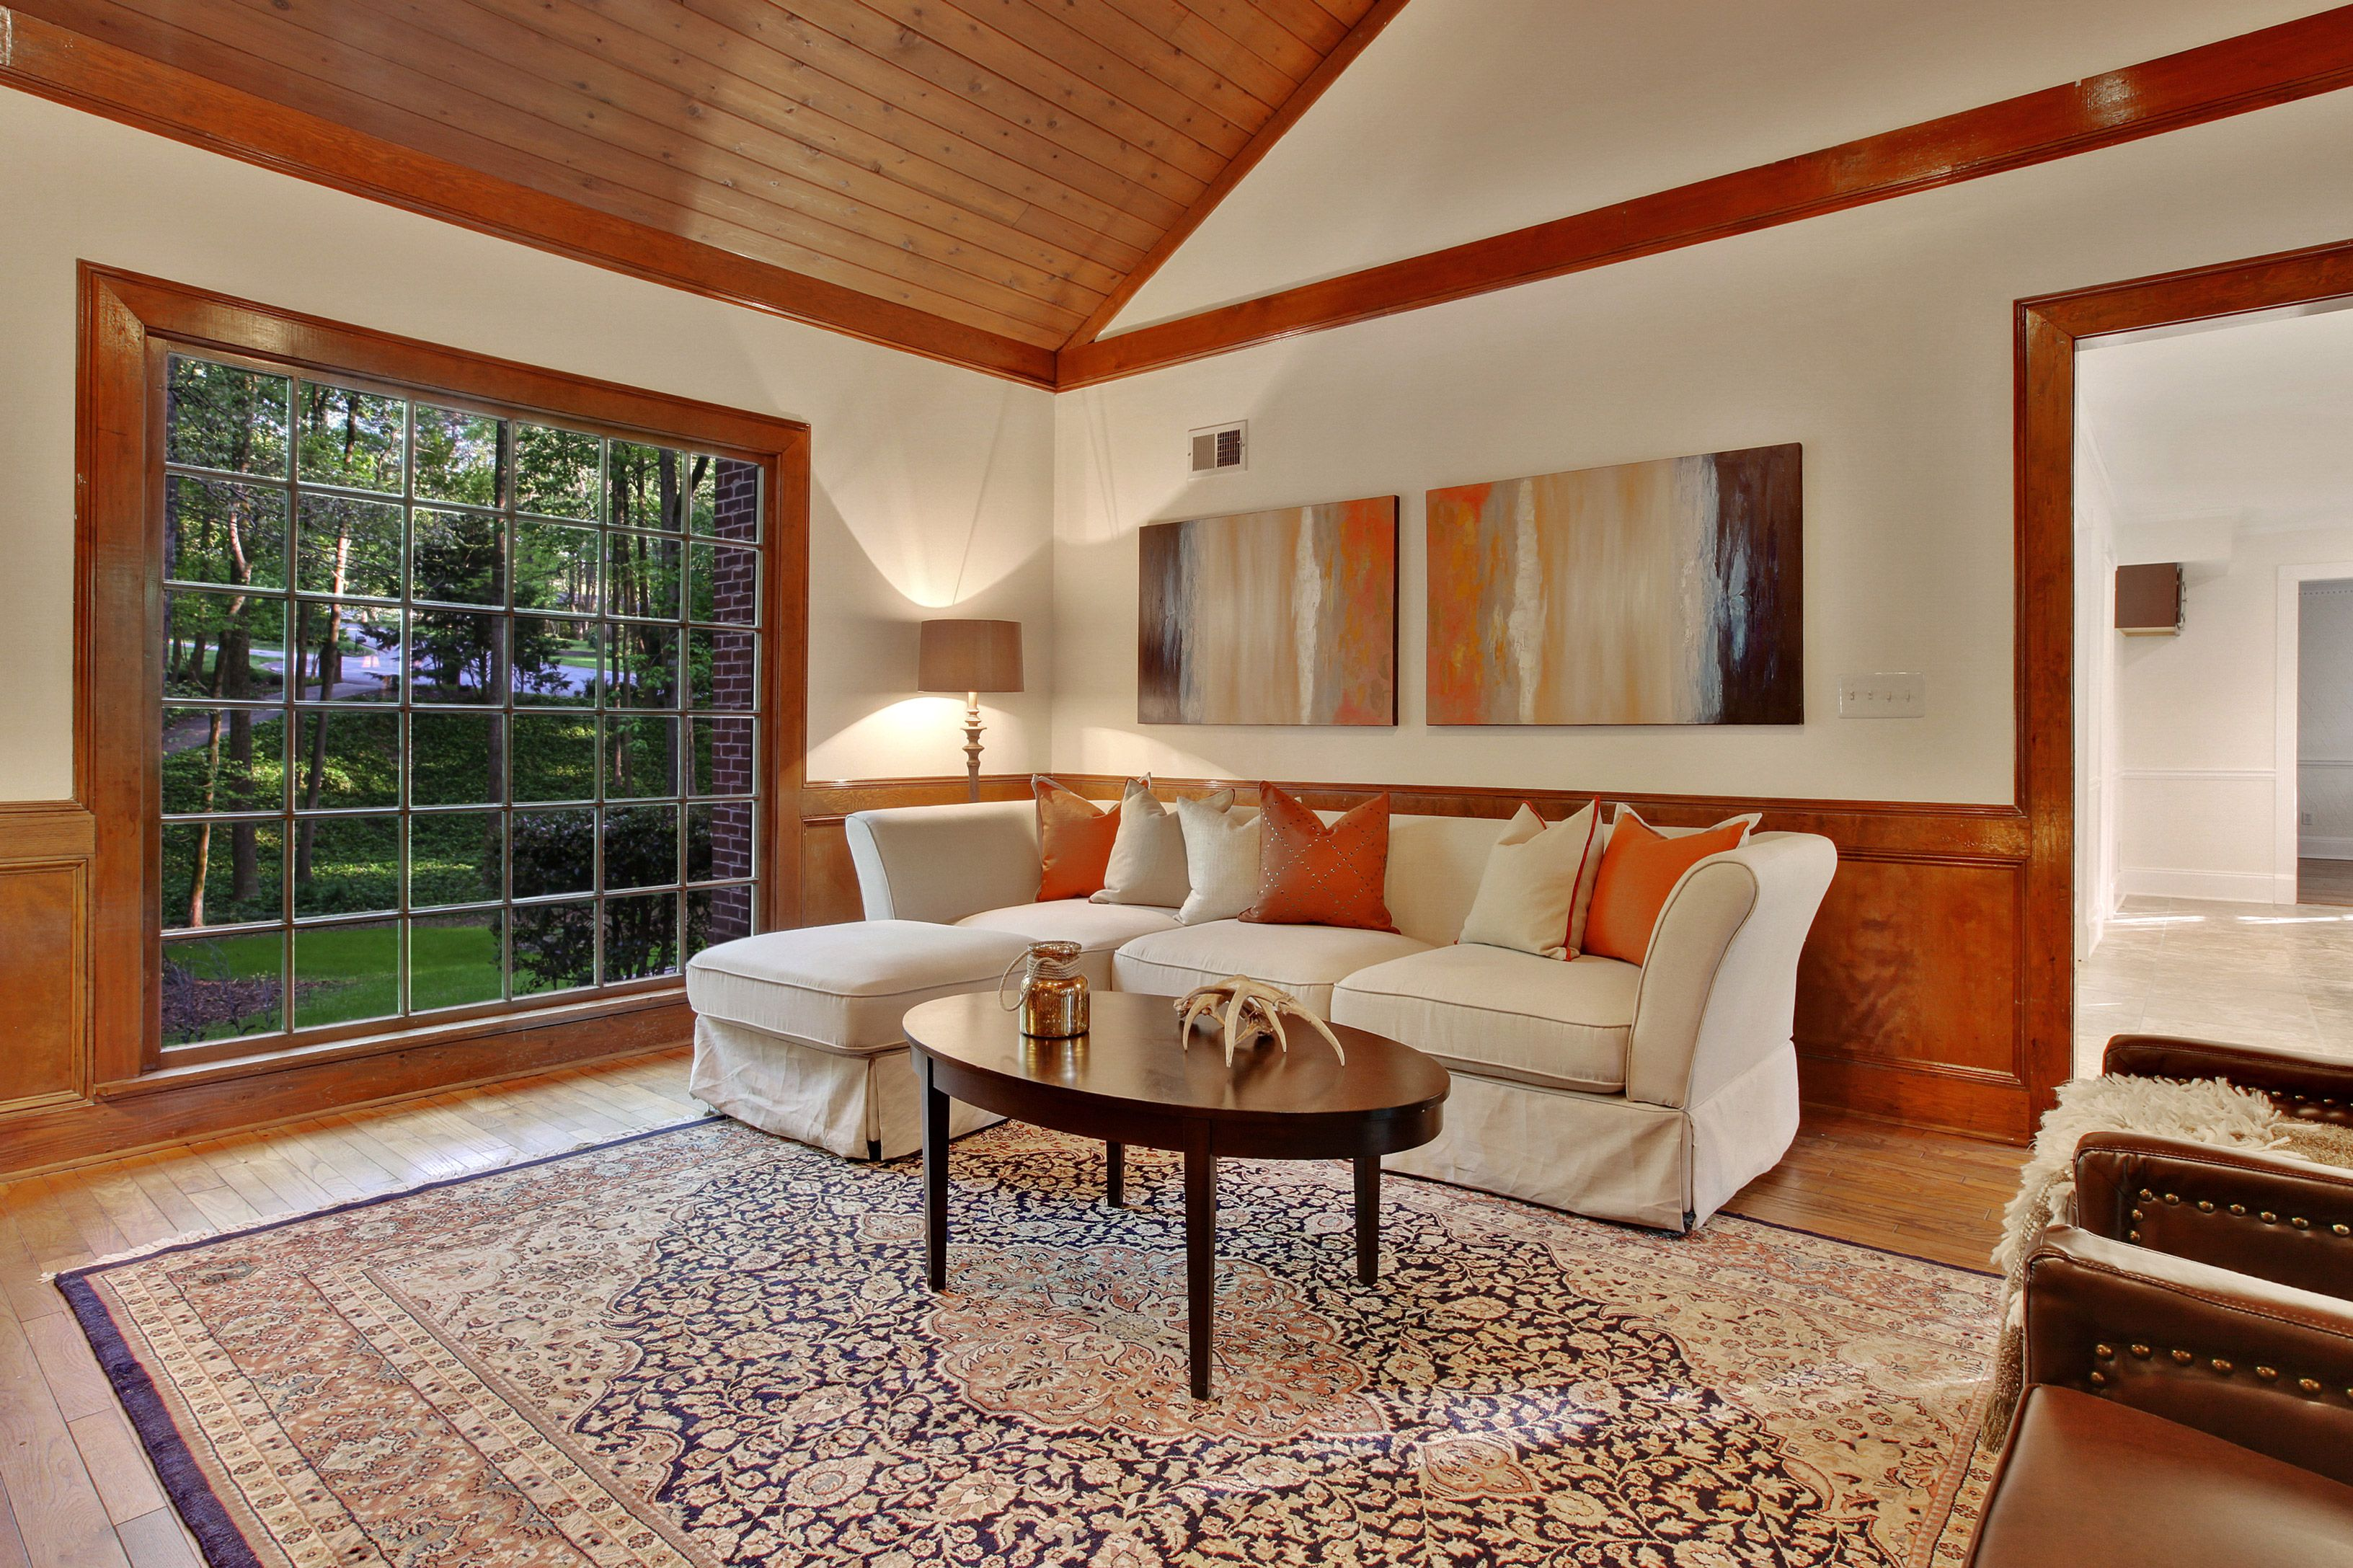 Great use of wall art to highlight the custom wood details in this great room with vaulted ceilings